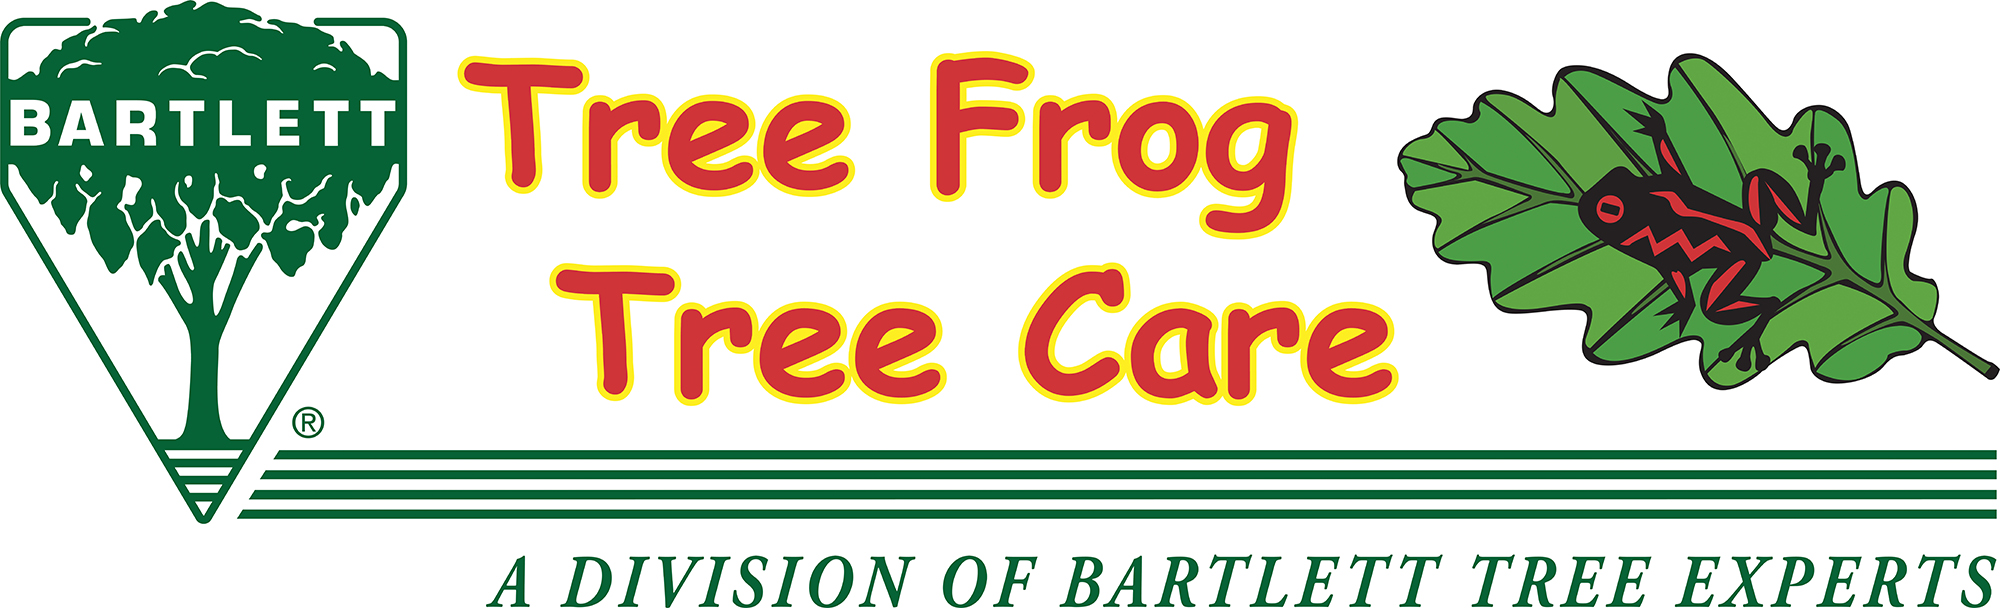 Tree Frog Tree Care Services